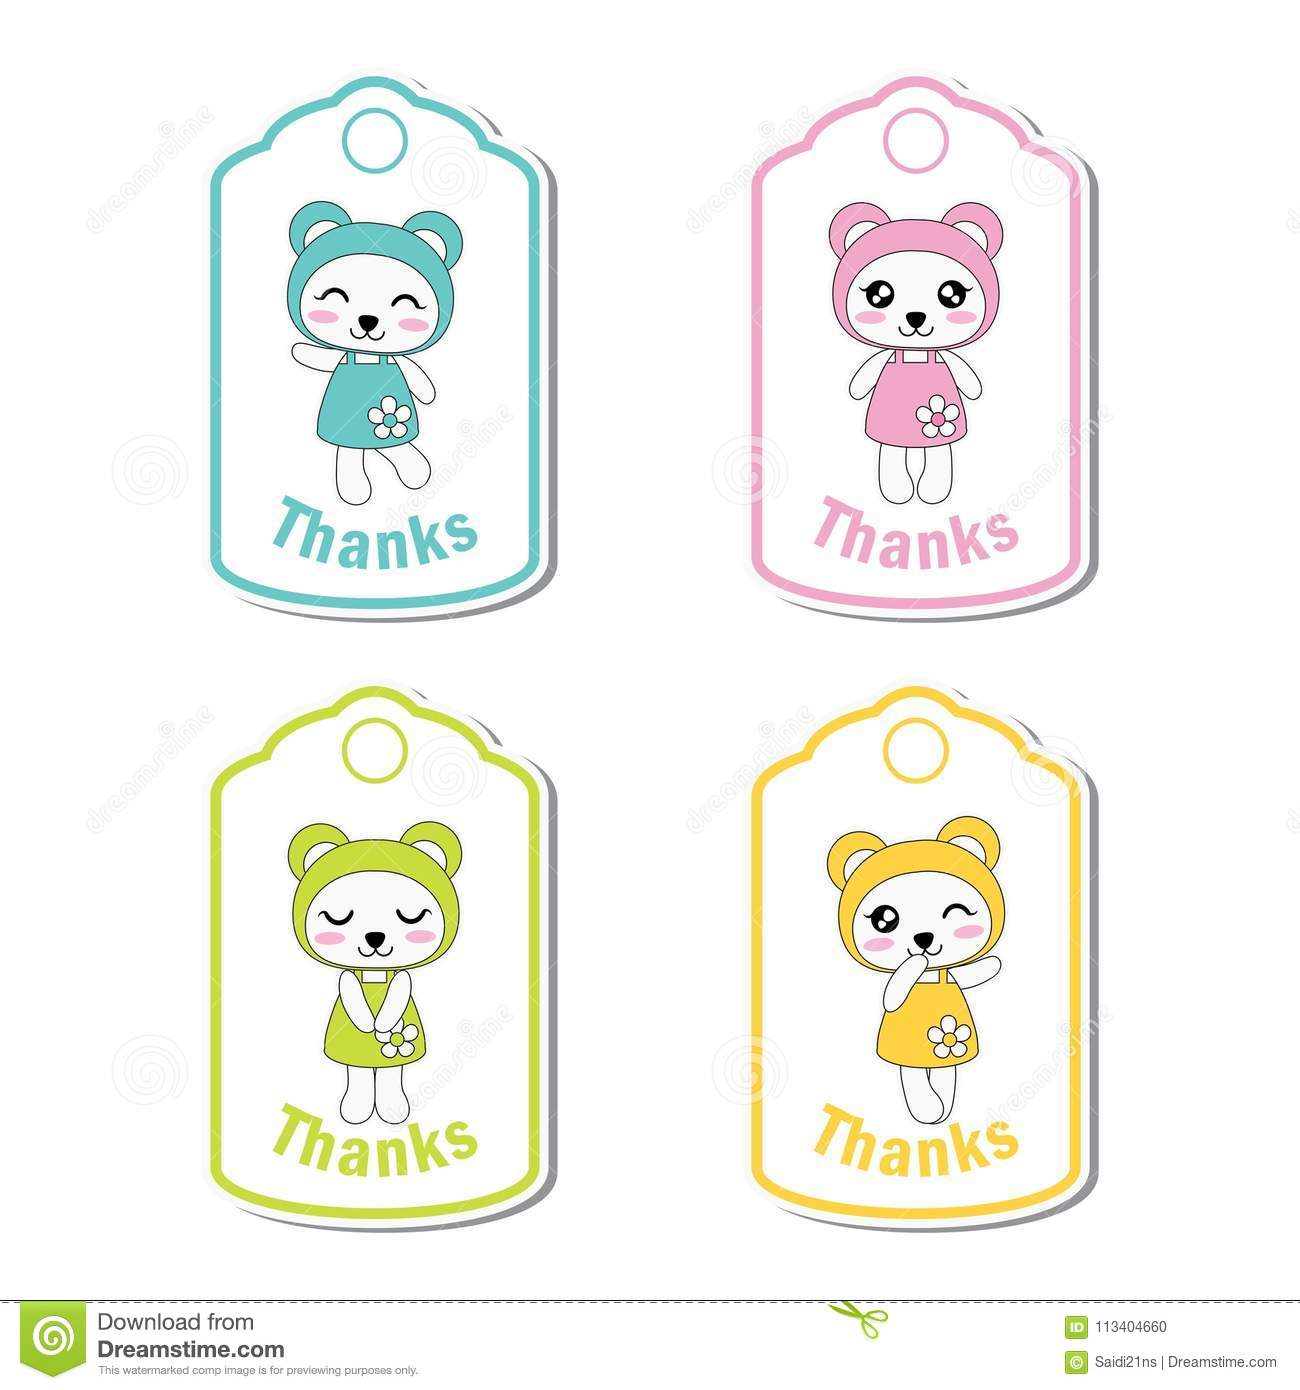 Colorful Cute Panda Girls Suitable For Kid Birthday Gift Tag